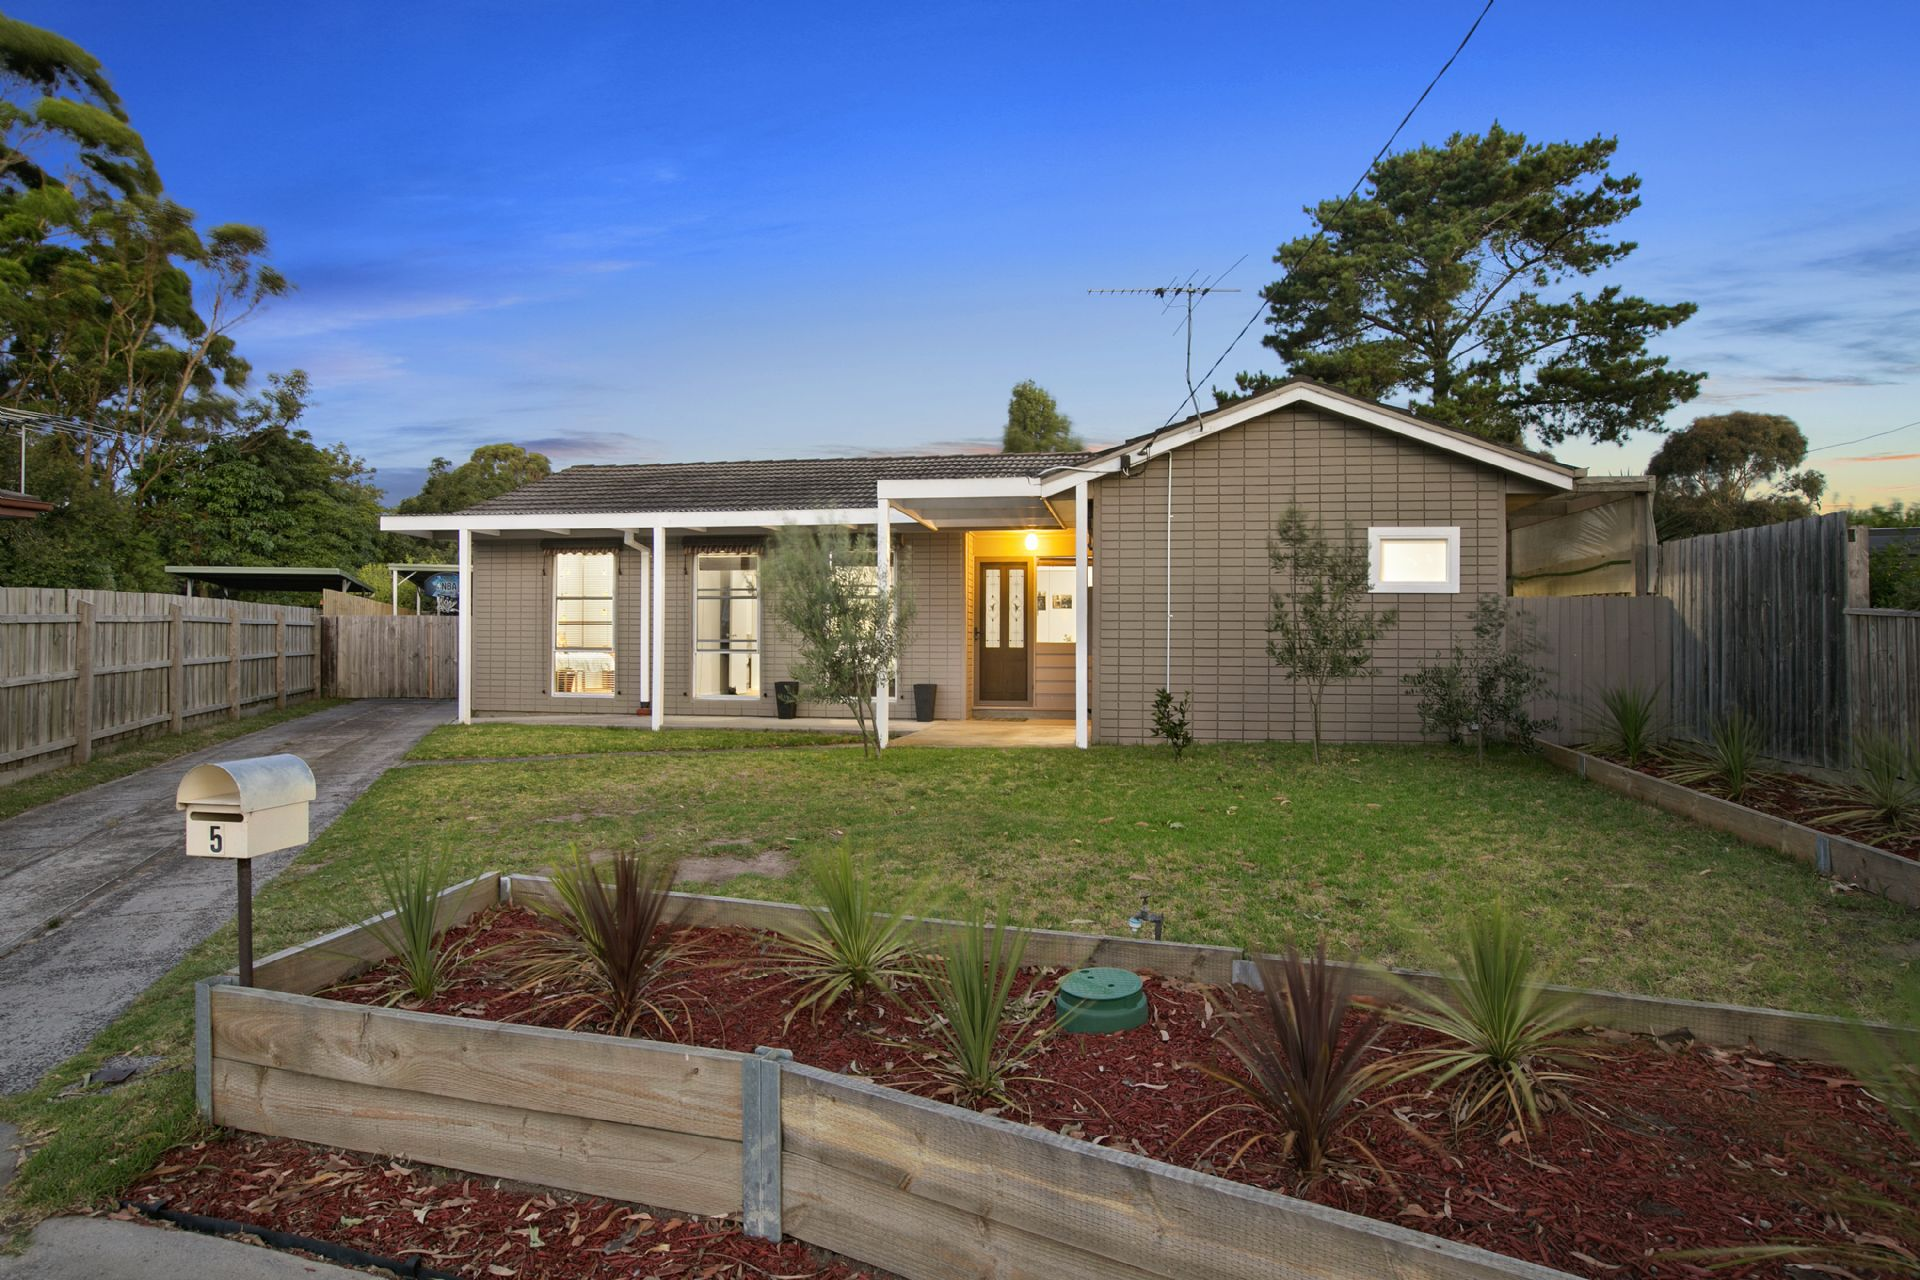 5 Adina Place, MORNINGTON, VIC, 3931 - Image